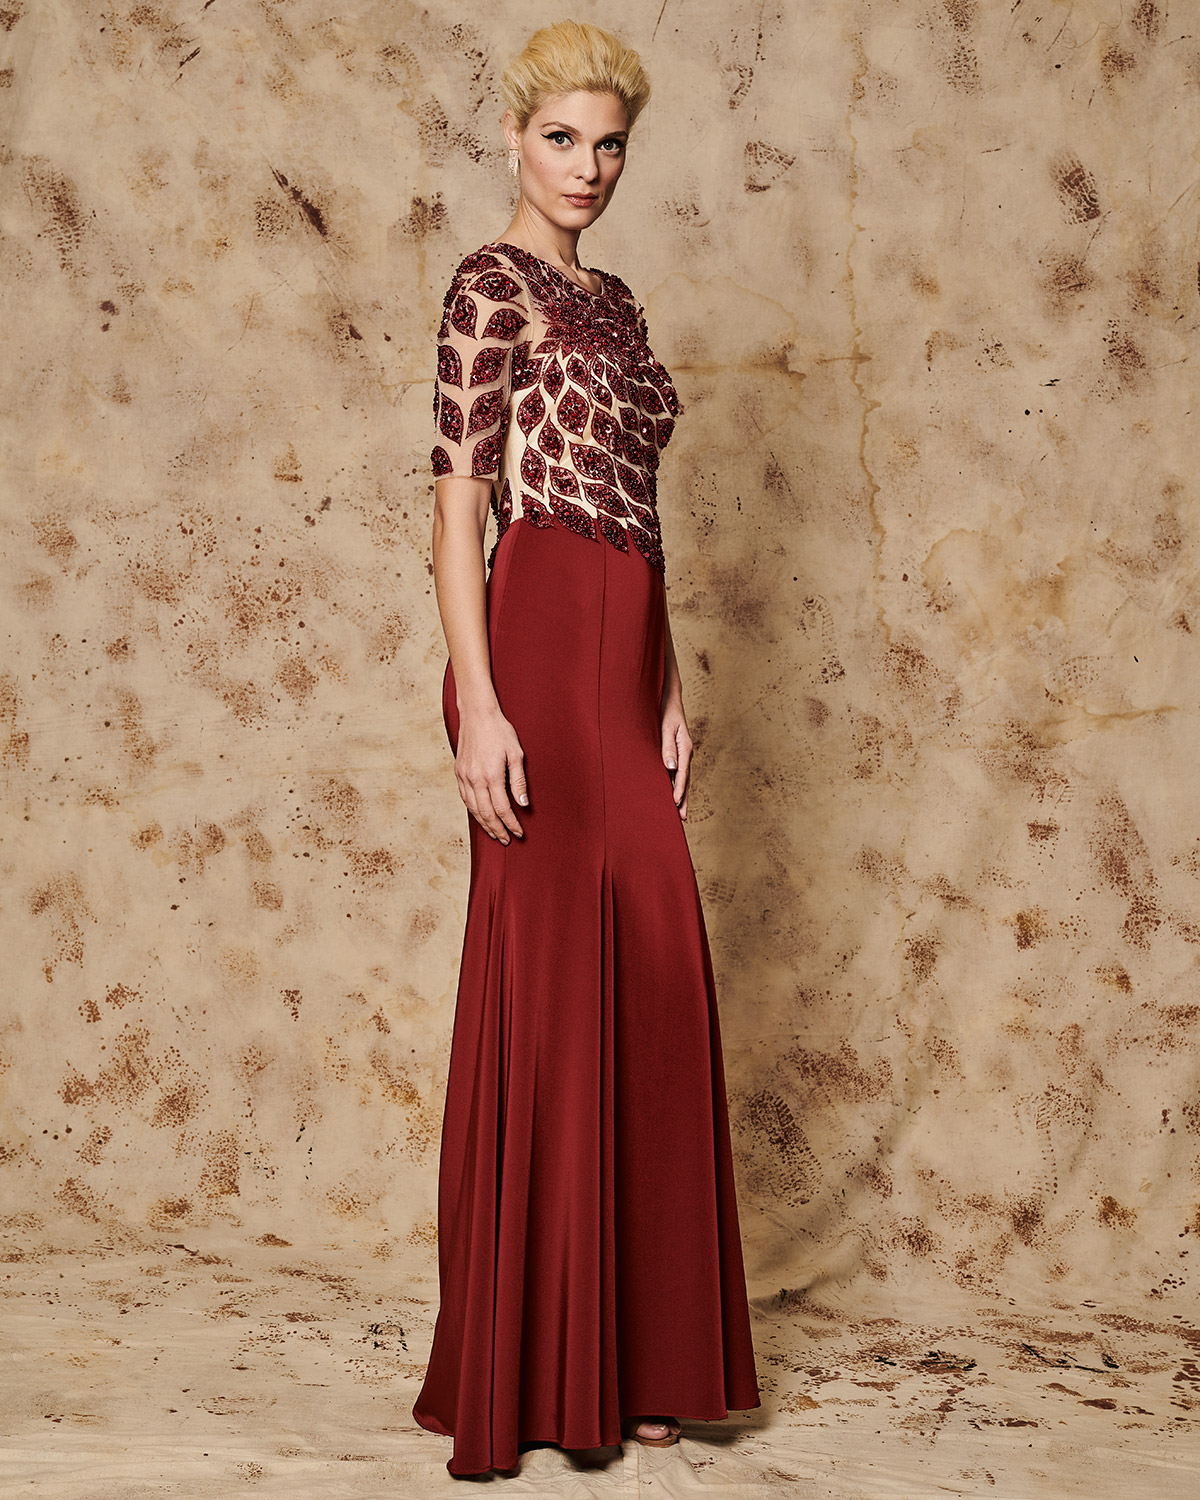 Classic Dresses / Long evening dress with tulle sleeves and beading